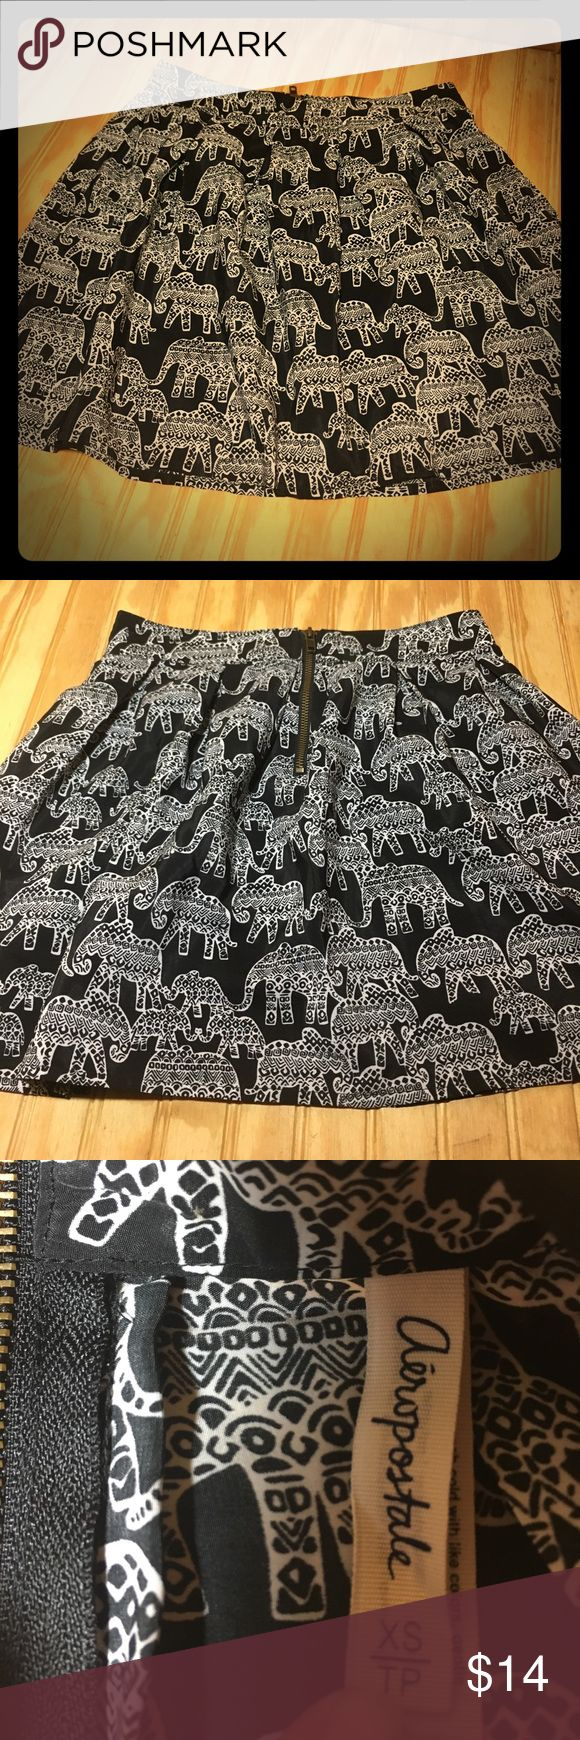 Aeropostale black elephant mini skirt, xs Aeropostale black & white elephant tribal print mini skirt with zipper, xs Aeropostale Skirts Mini